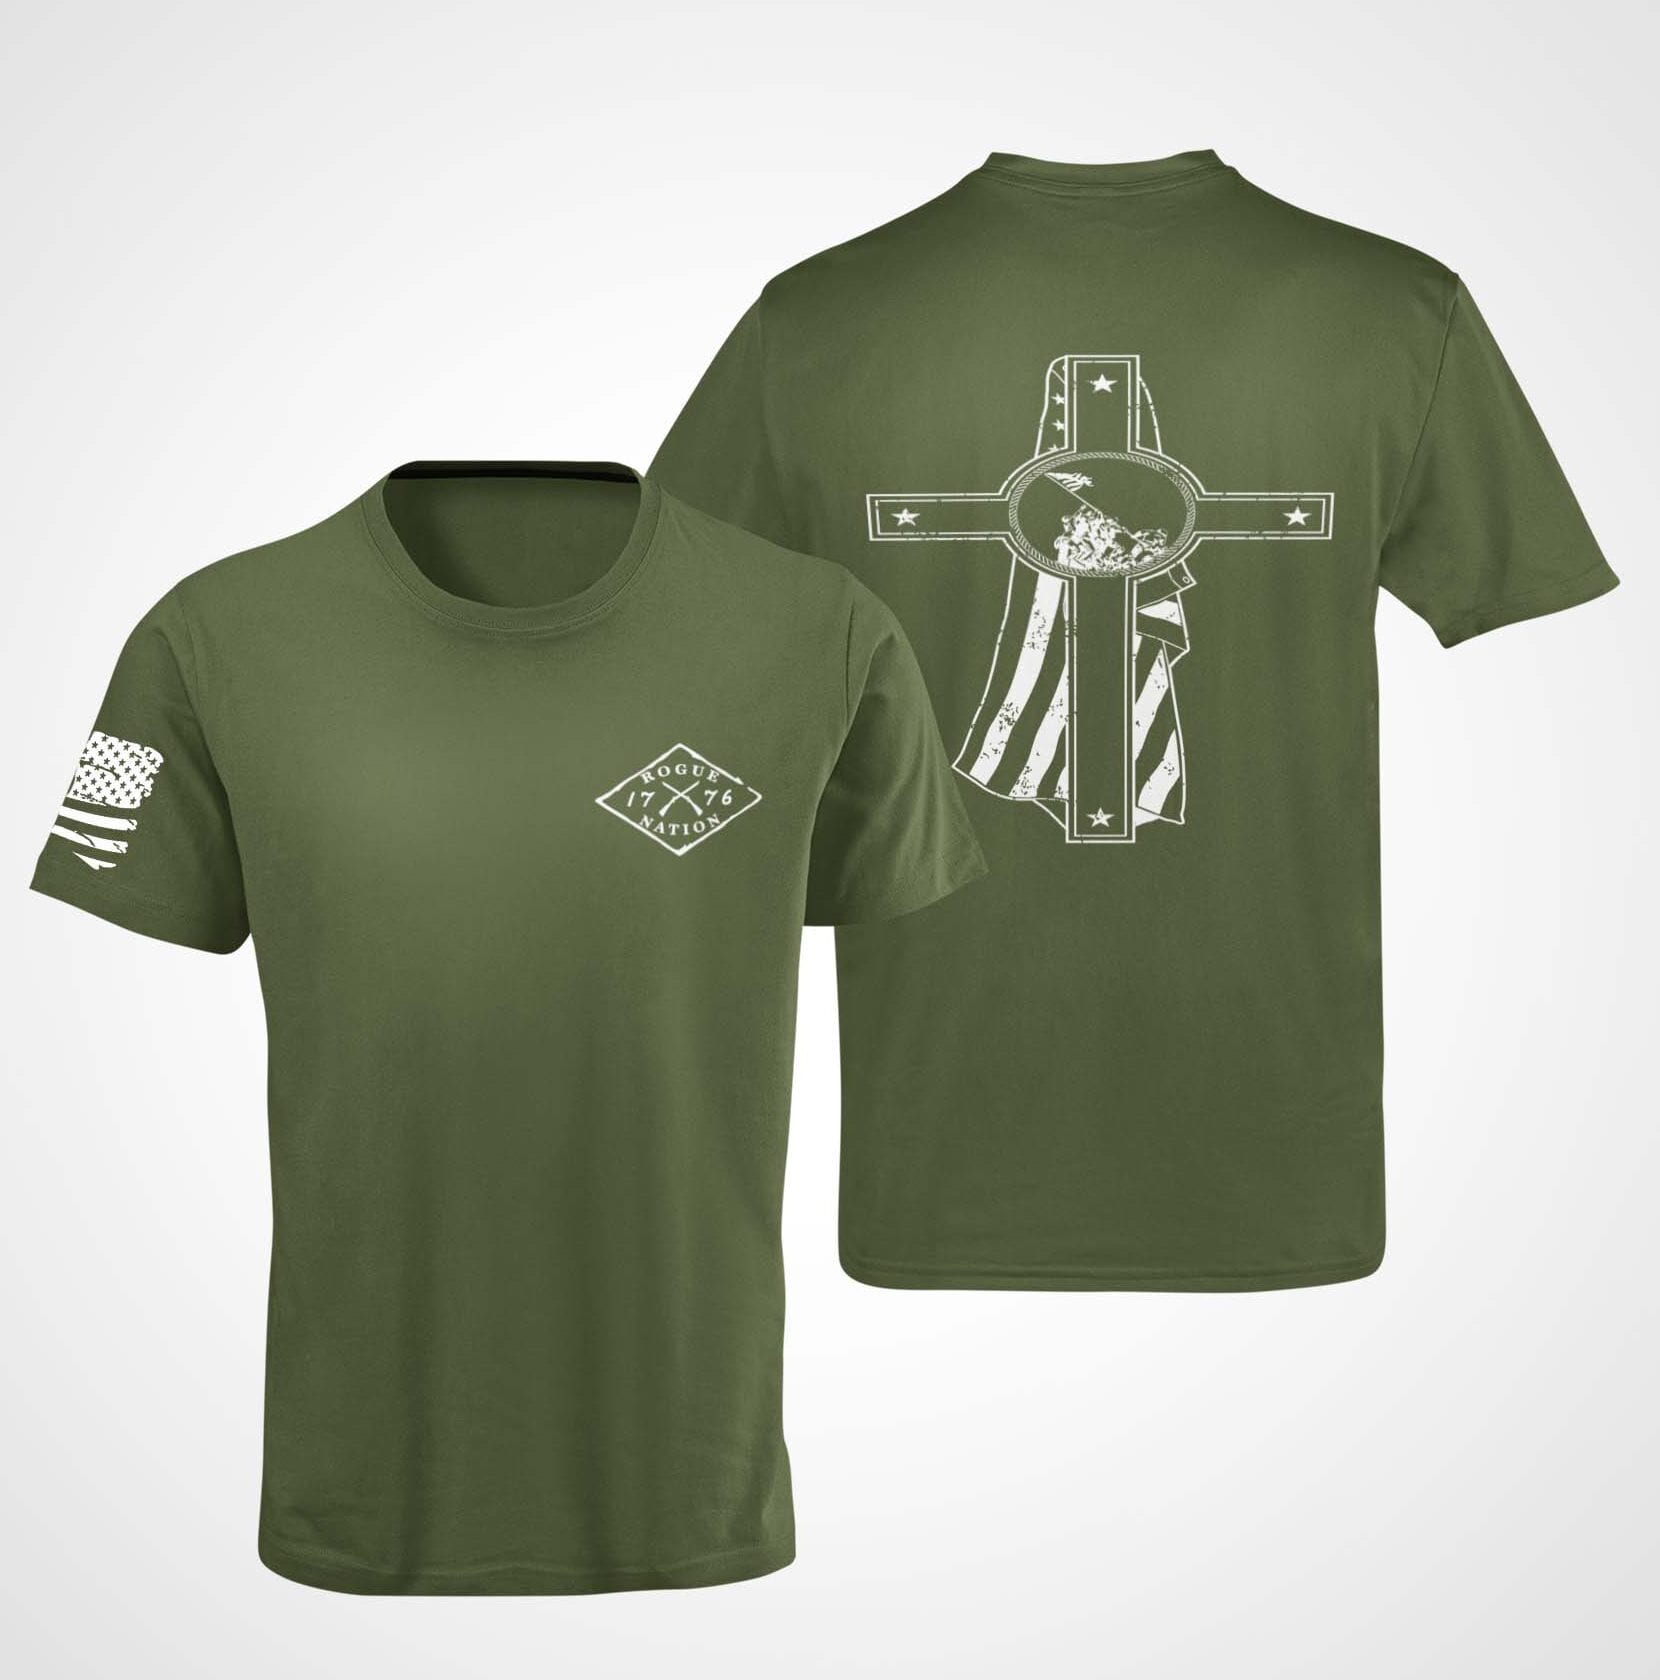 Memorial Day T-Shirt on a Men's Army T-Shirt